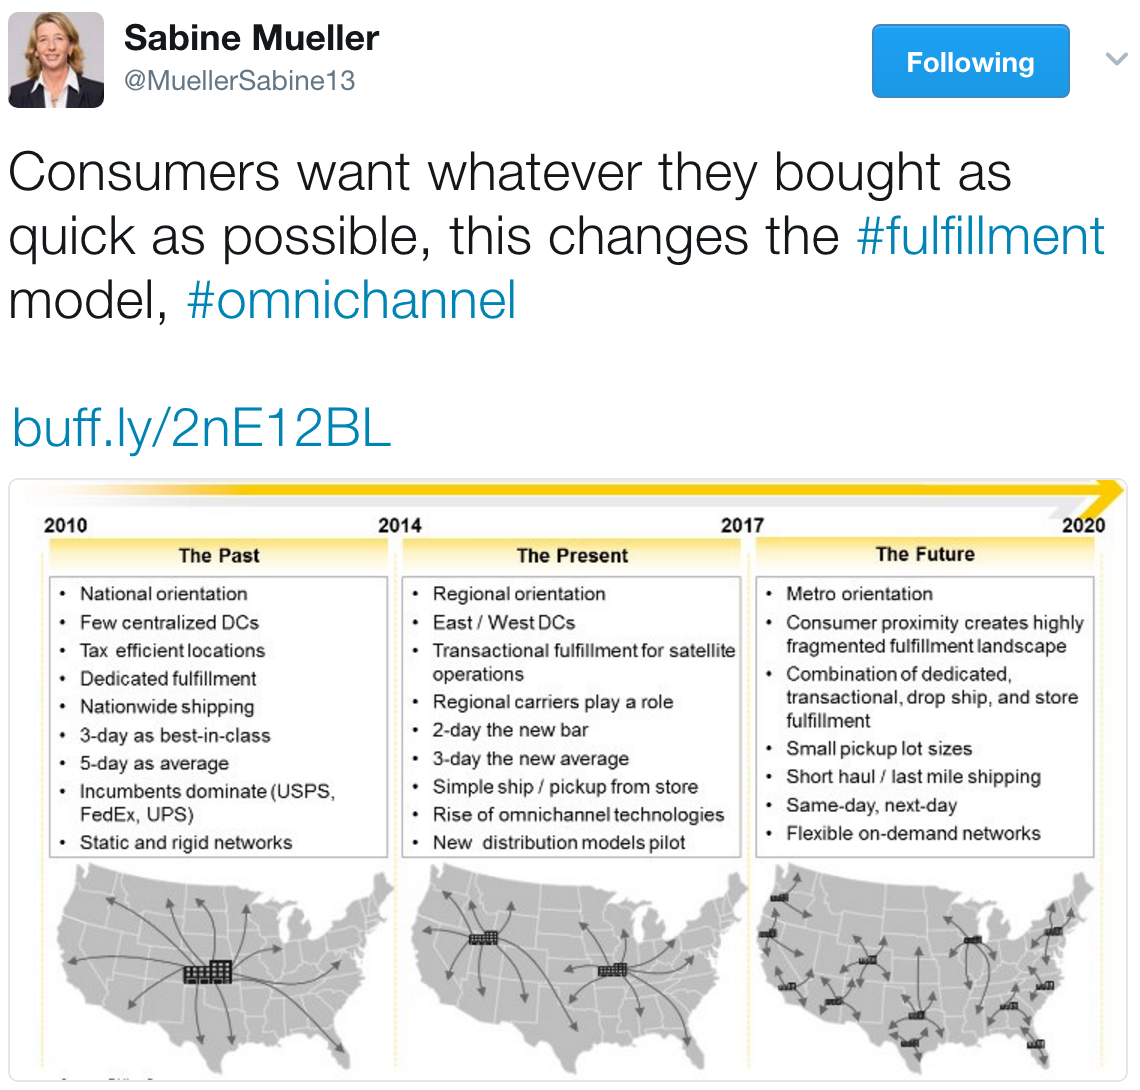 tweet from Sabine Mueller, CEO, DHL Consulting